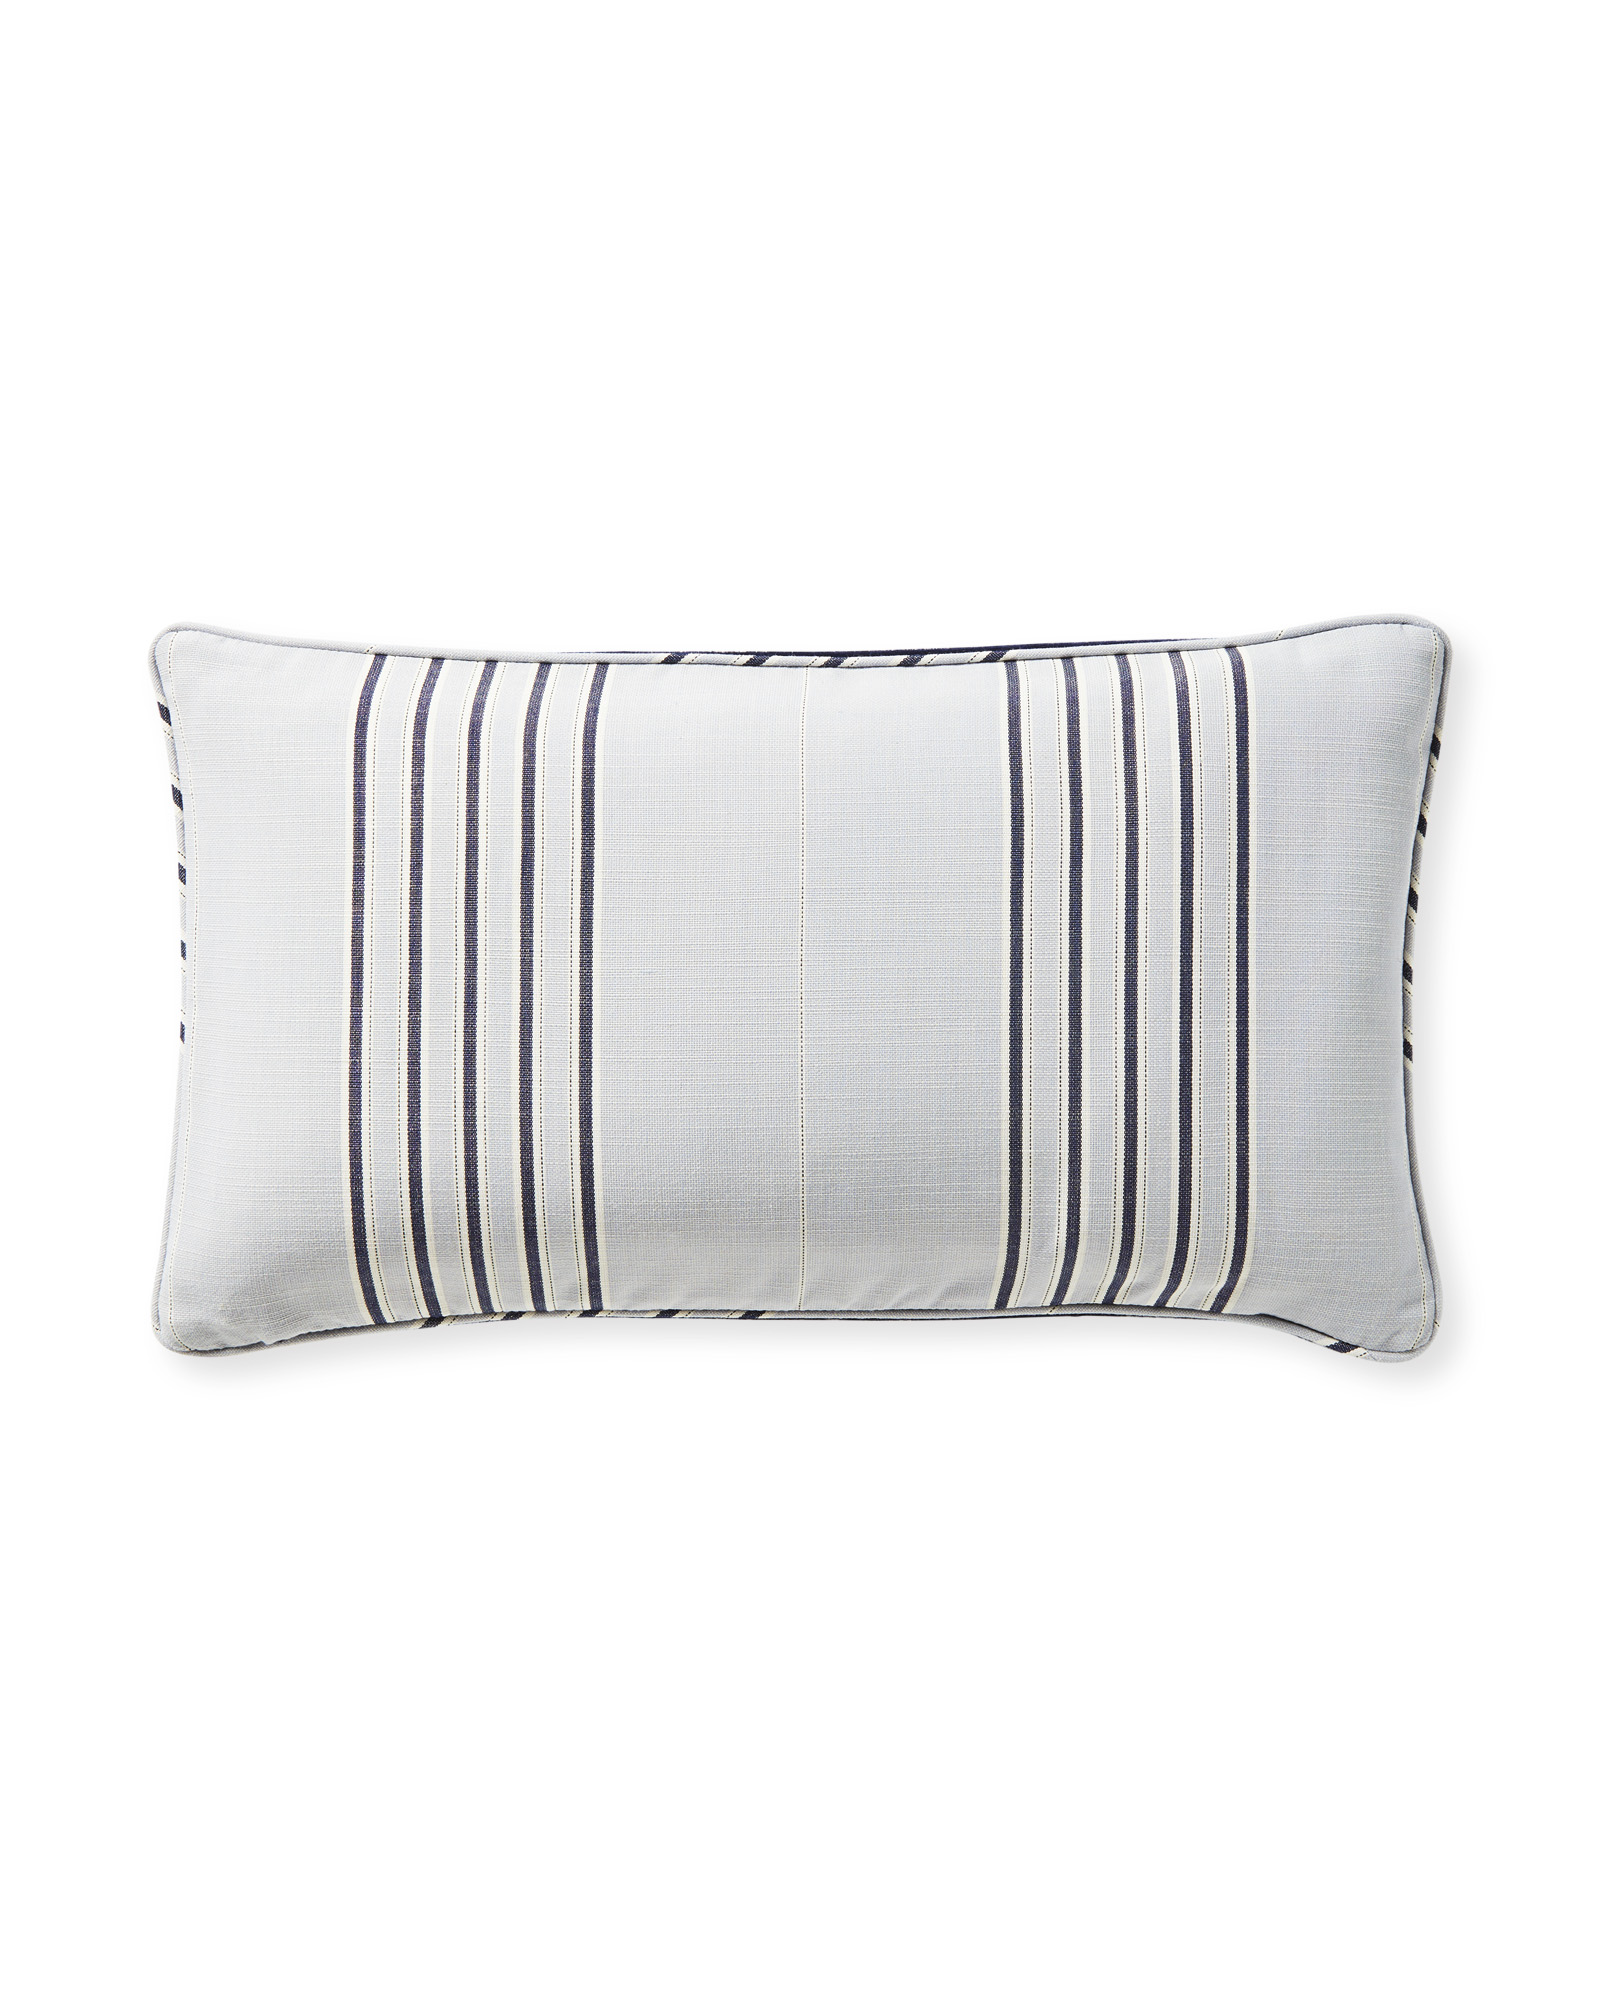 Perennials Rockland® Pillow Cover, Navy